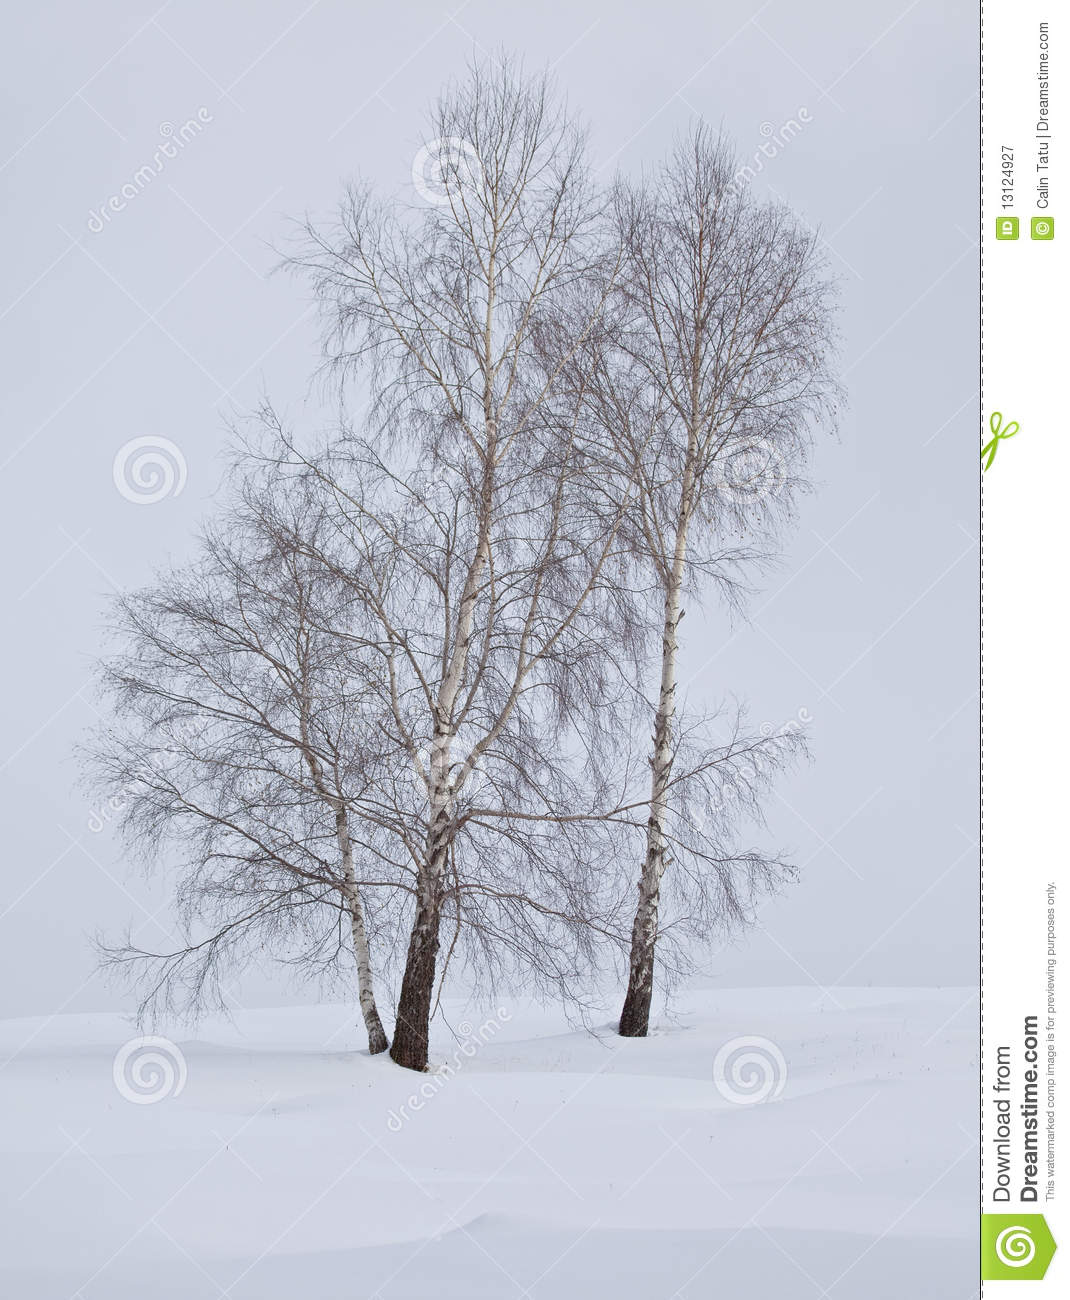 Birch trees in winter royalty free stock photography image 13124927